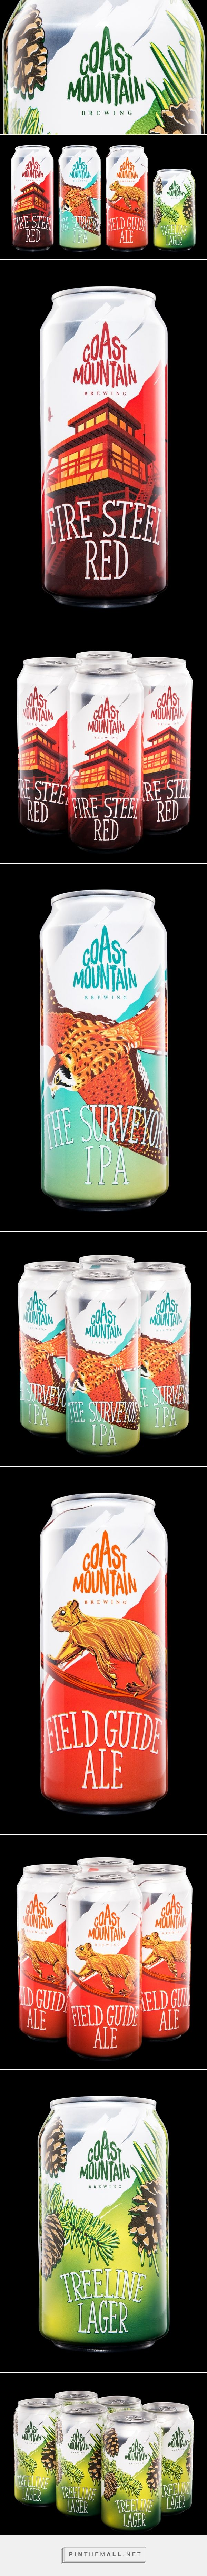 Coast Mountain Brewing - Packaging of the World - Creative Package Design Gallery - http://www.packagingoftheworld.com/2016/12/coast-mountain-brewing.html